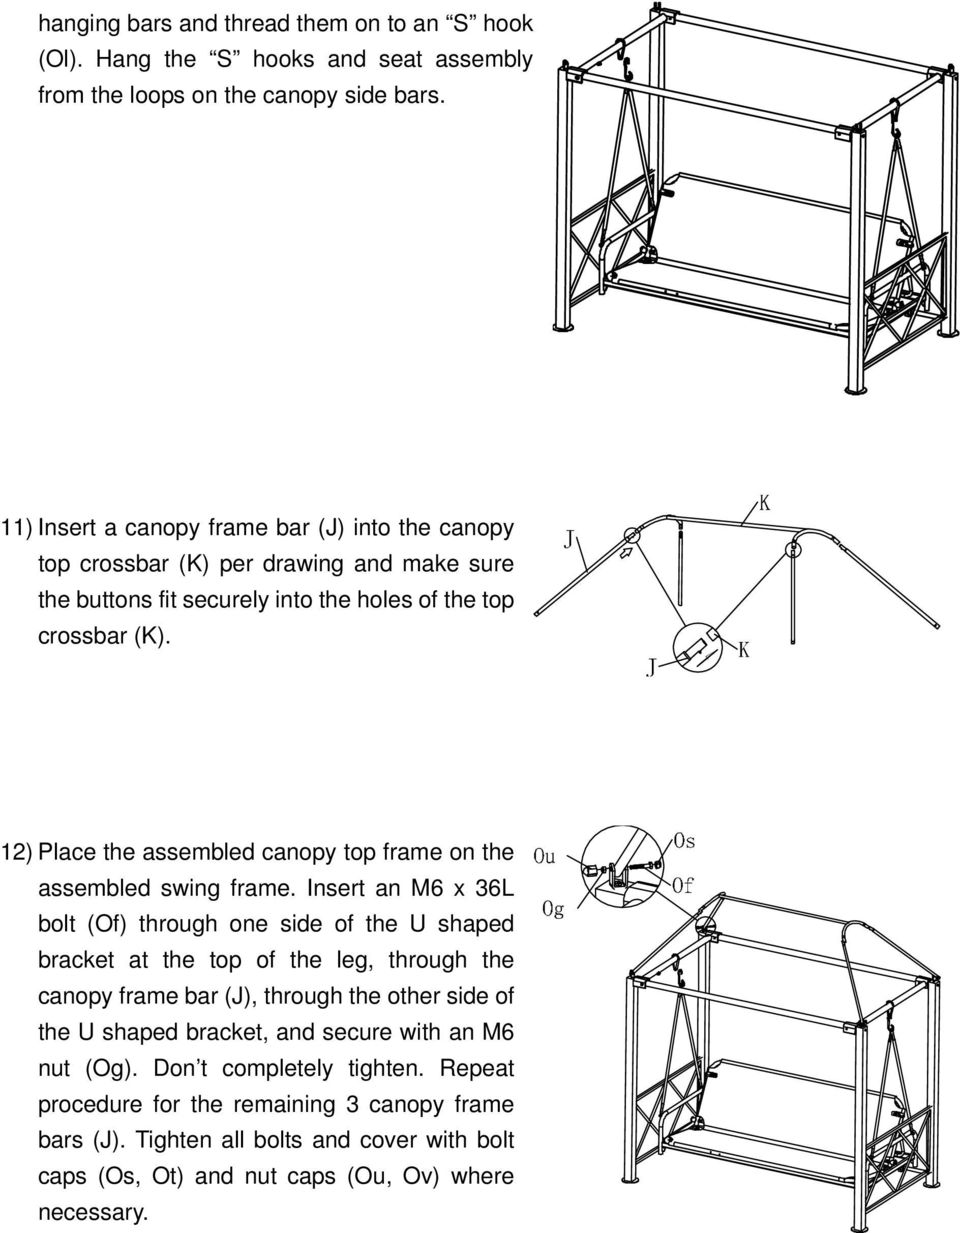 12) Place the assembled canopy top frame on the assembled swing frame.